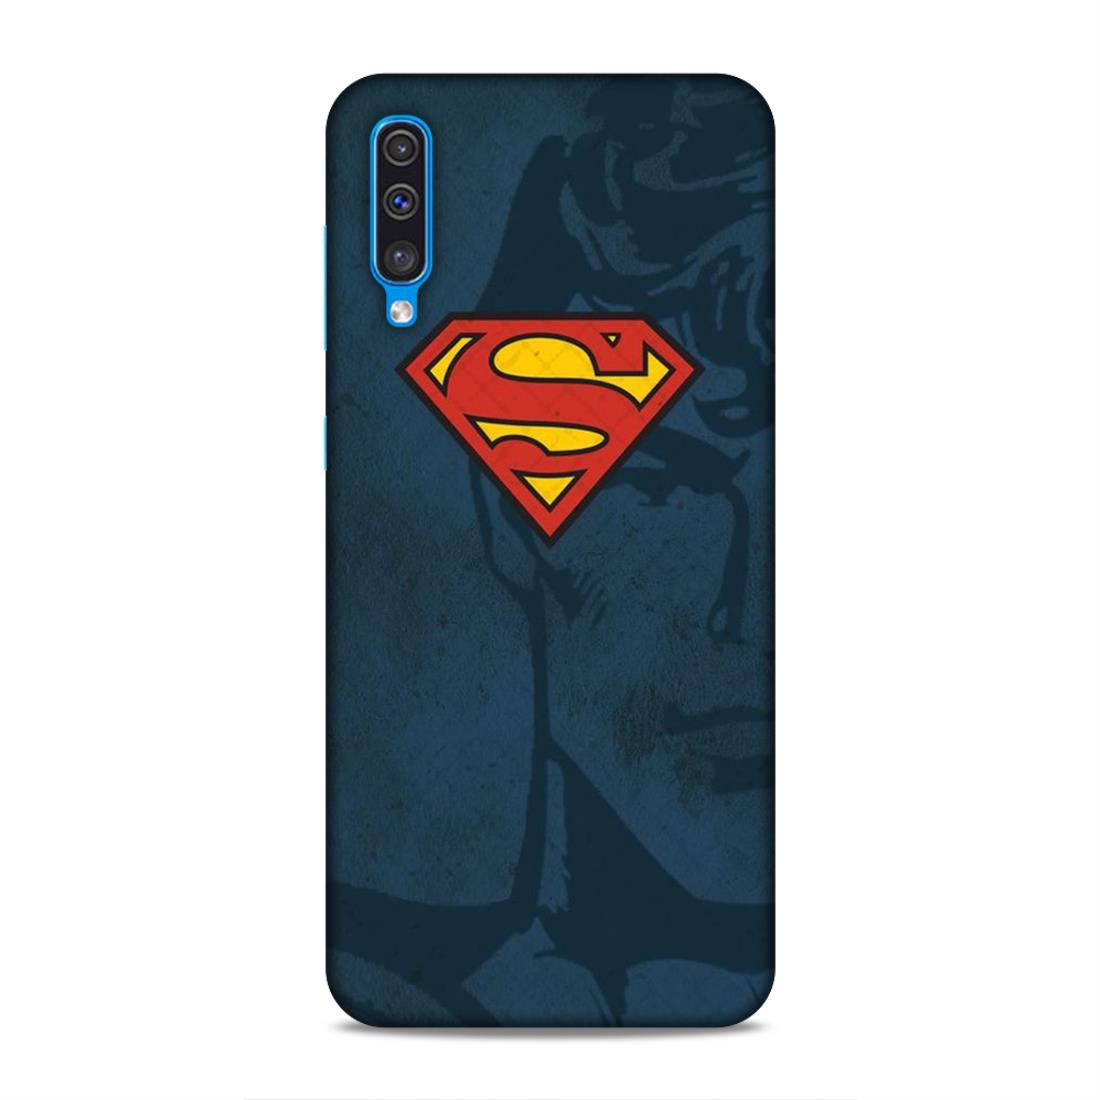 Phone Cases,Samsung Phone Cases,Samsung A30s,Superheroes